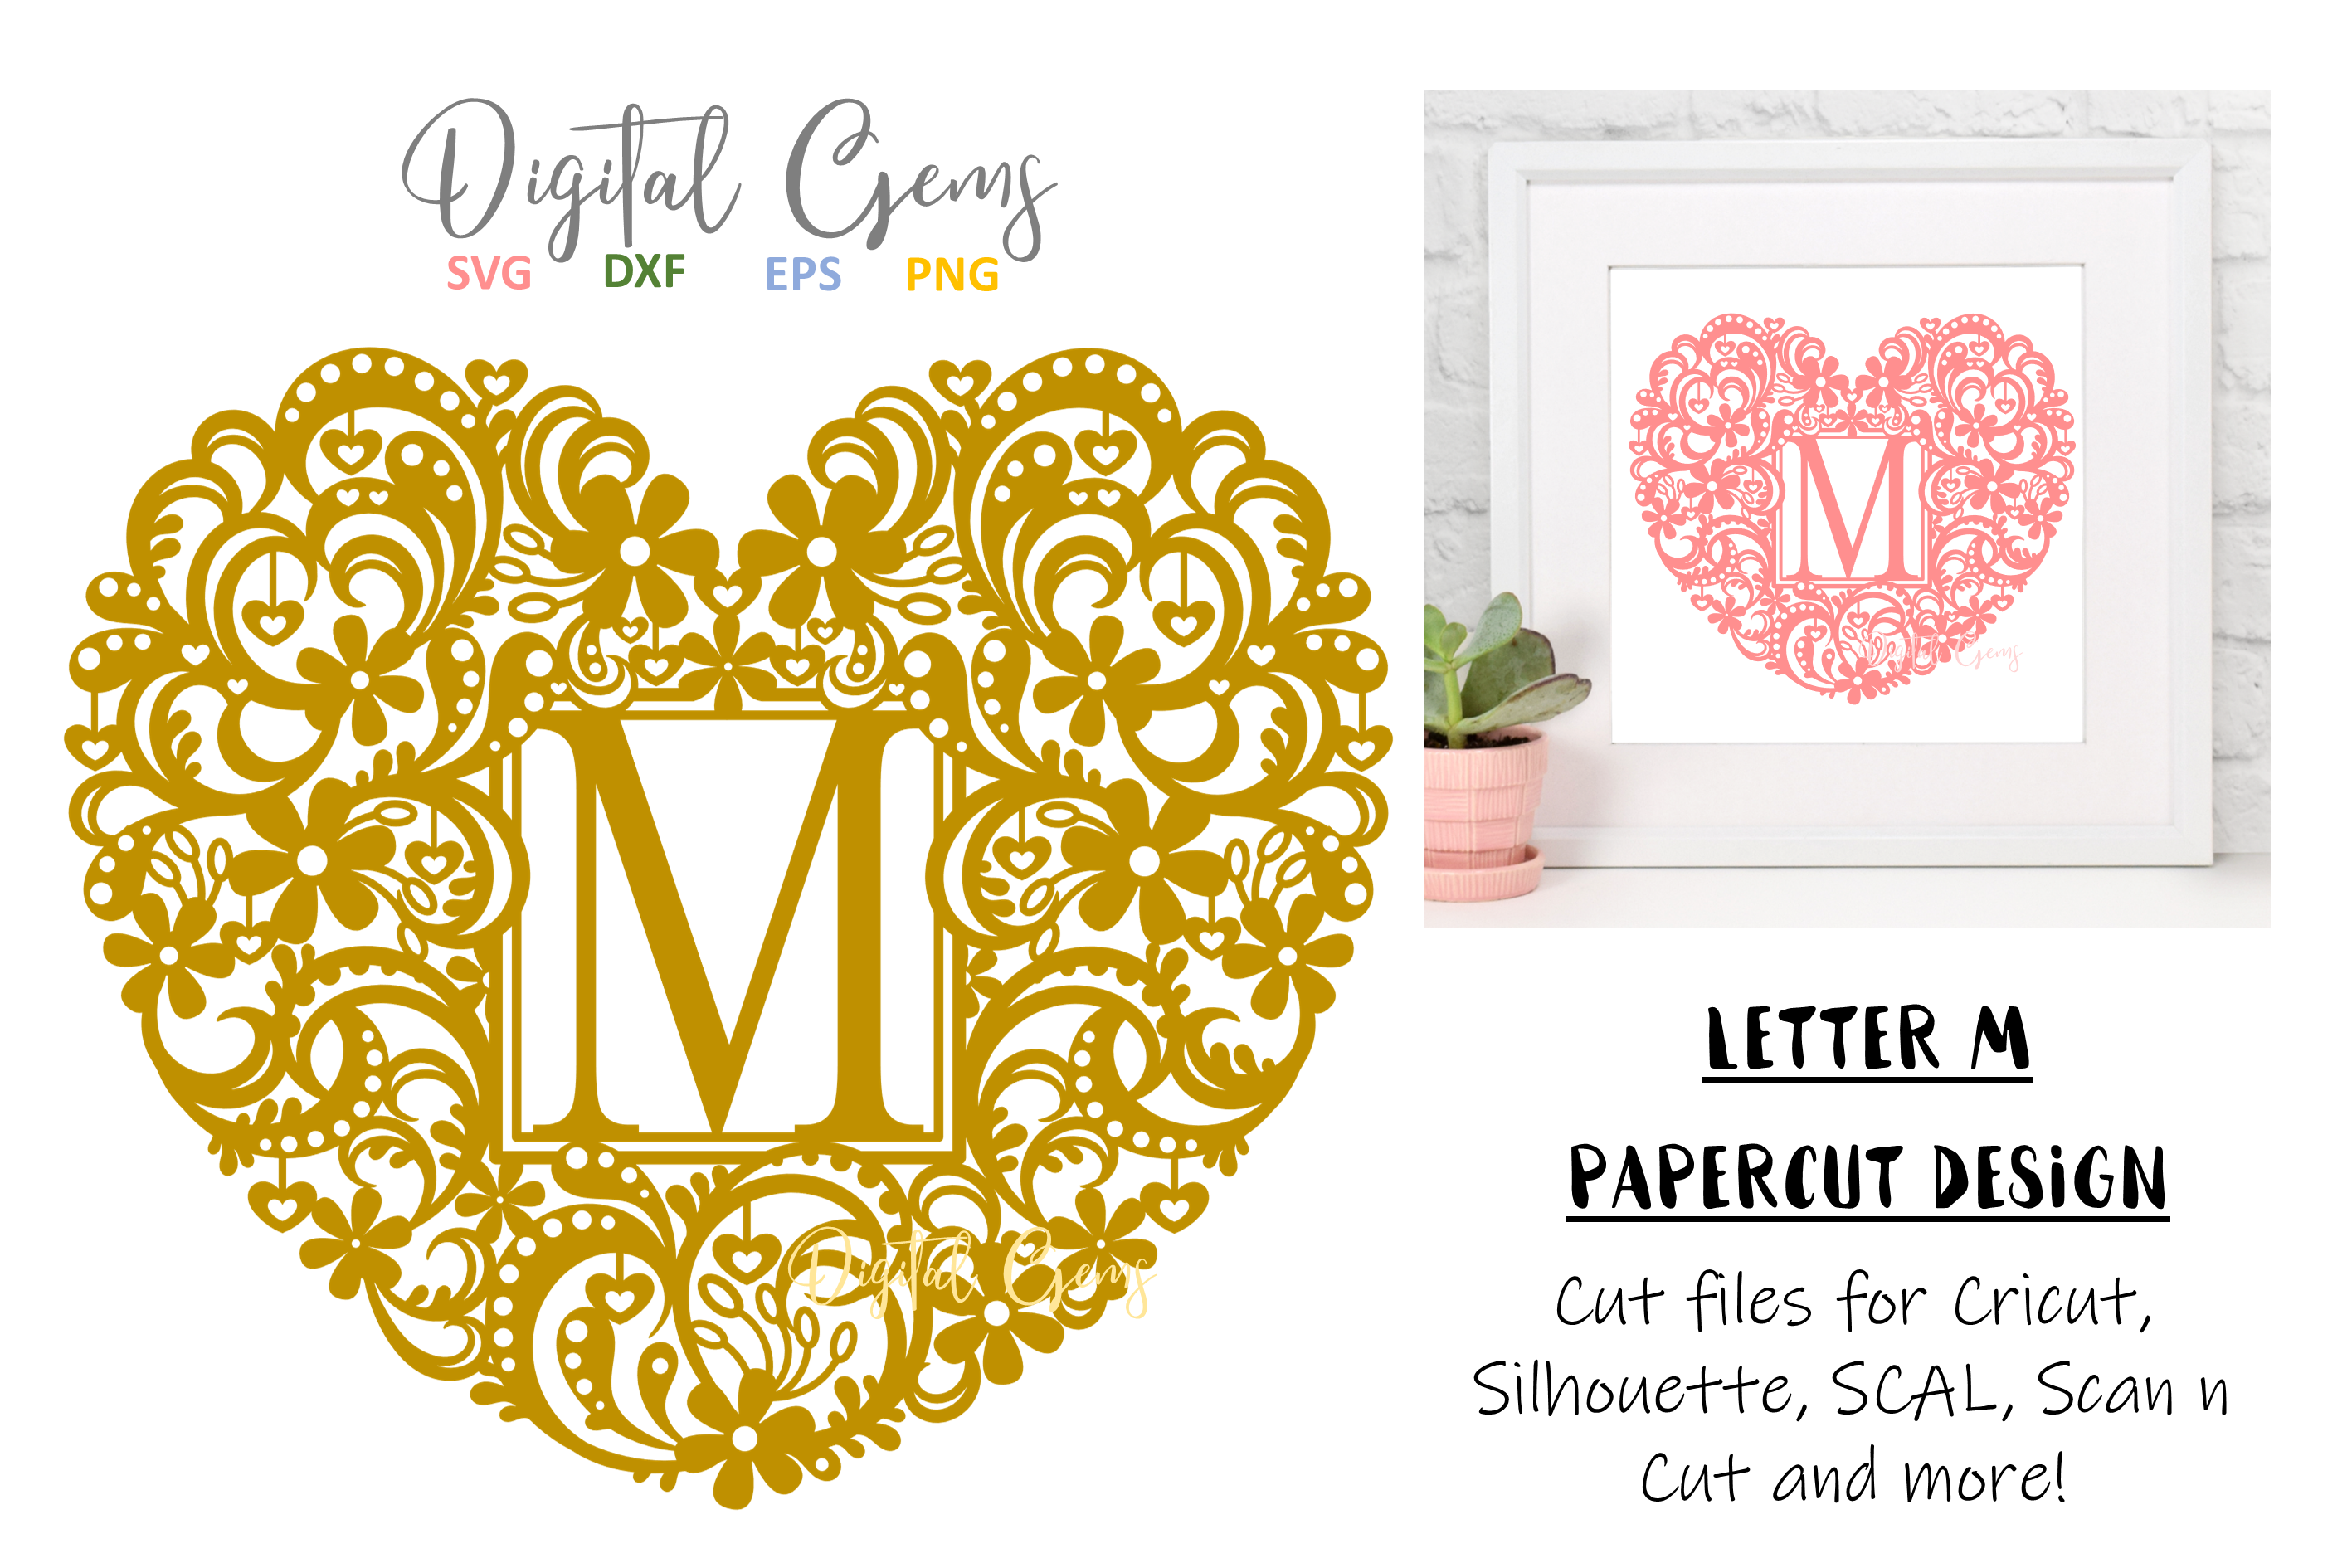 Letter M paper cut design. SVG / DXF / EPS / PNG files example image 1